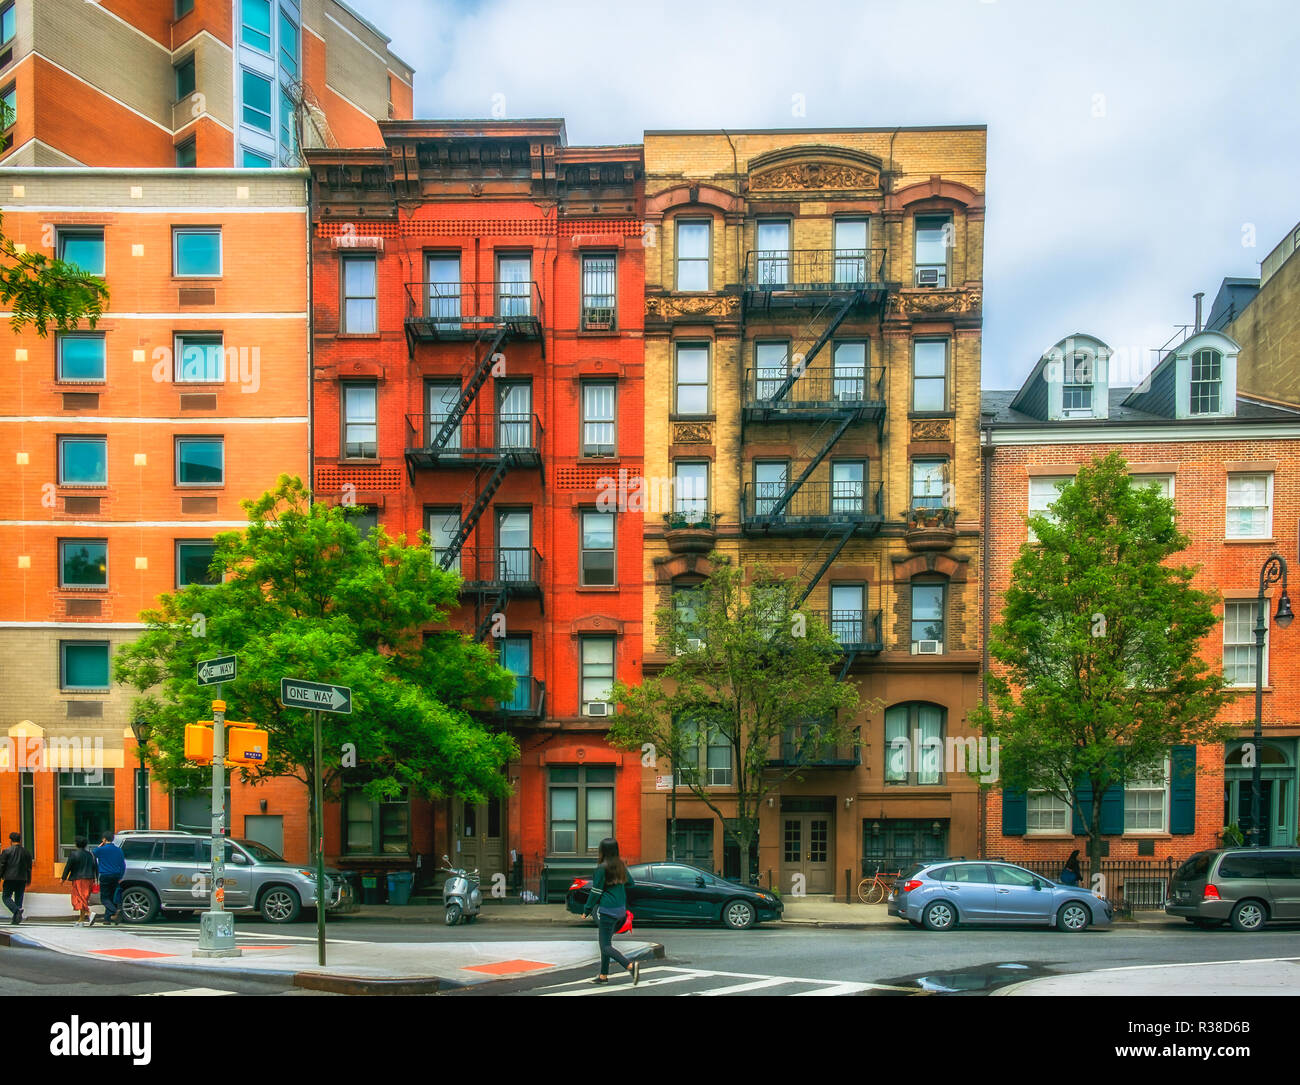 New York City, USA, May 2018, example of the gentrification in the East Village with two old buildings in between modern constructions in Stuyvesant - Stock Image